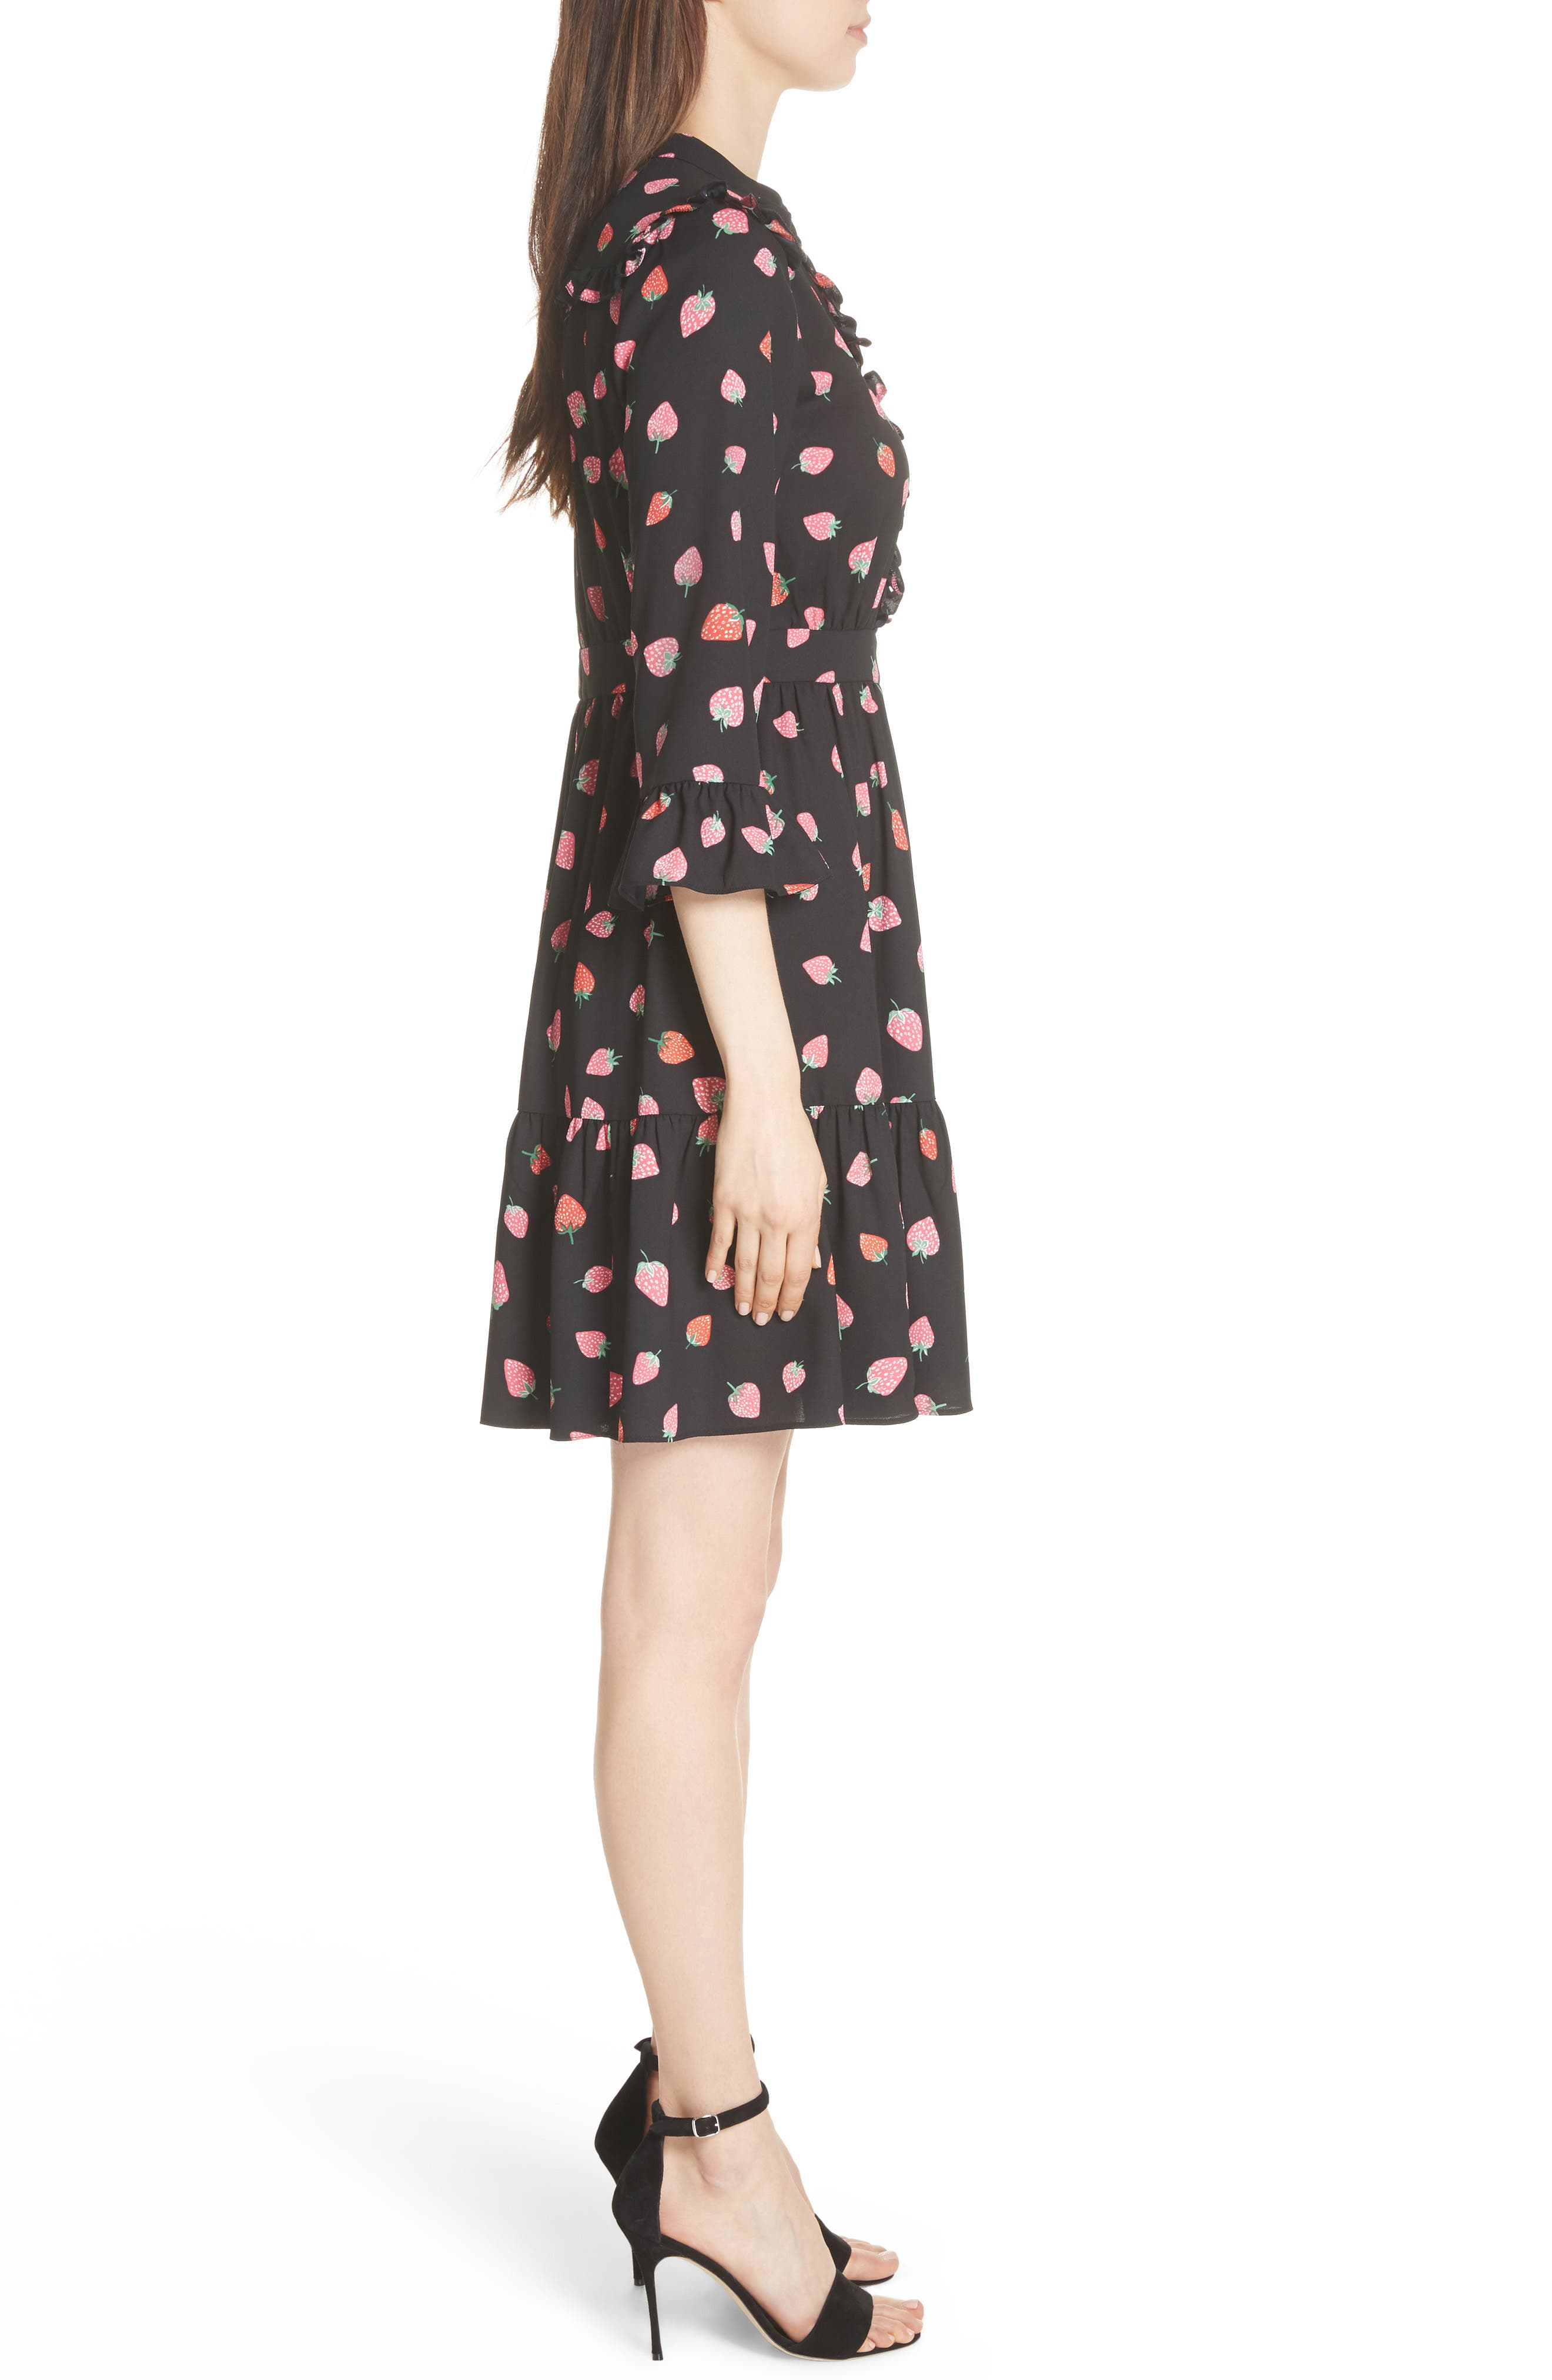 tossed berry shirtdress,                             Alternate thumbnail 3, color,                             001